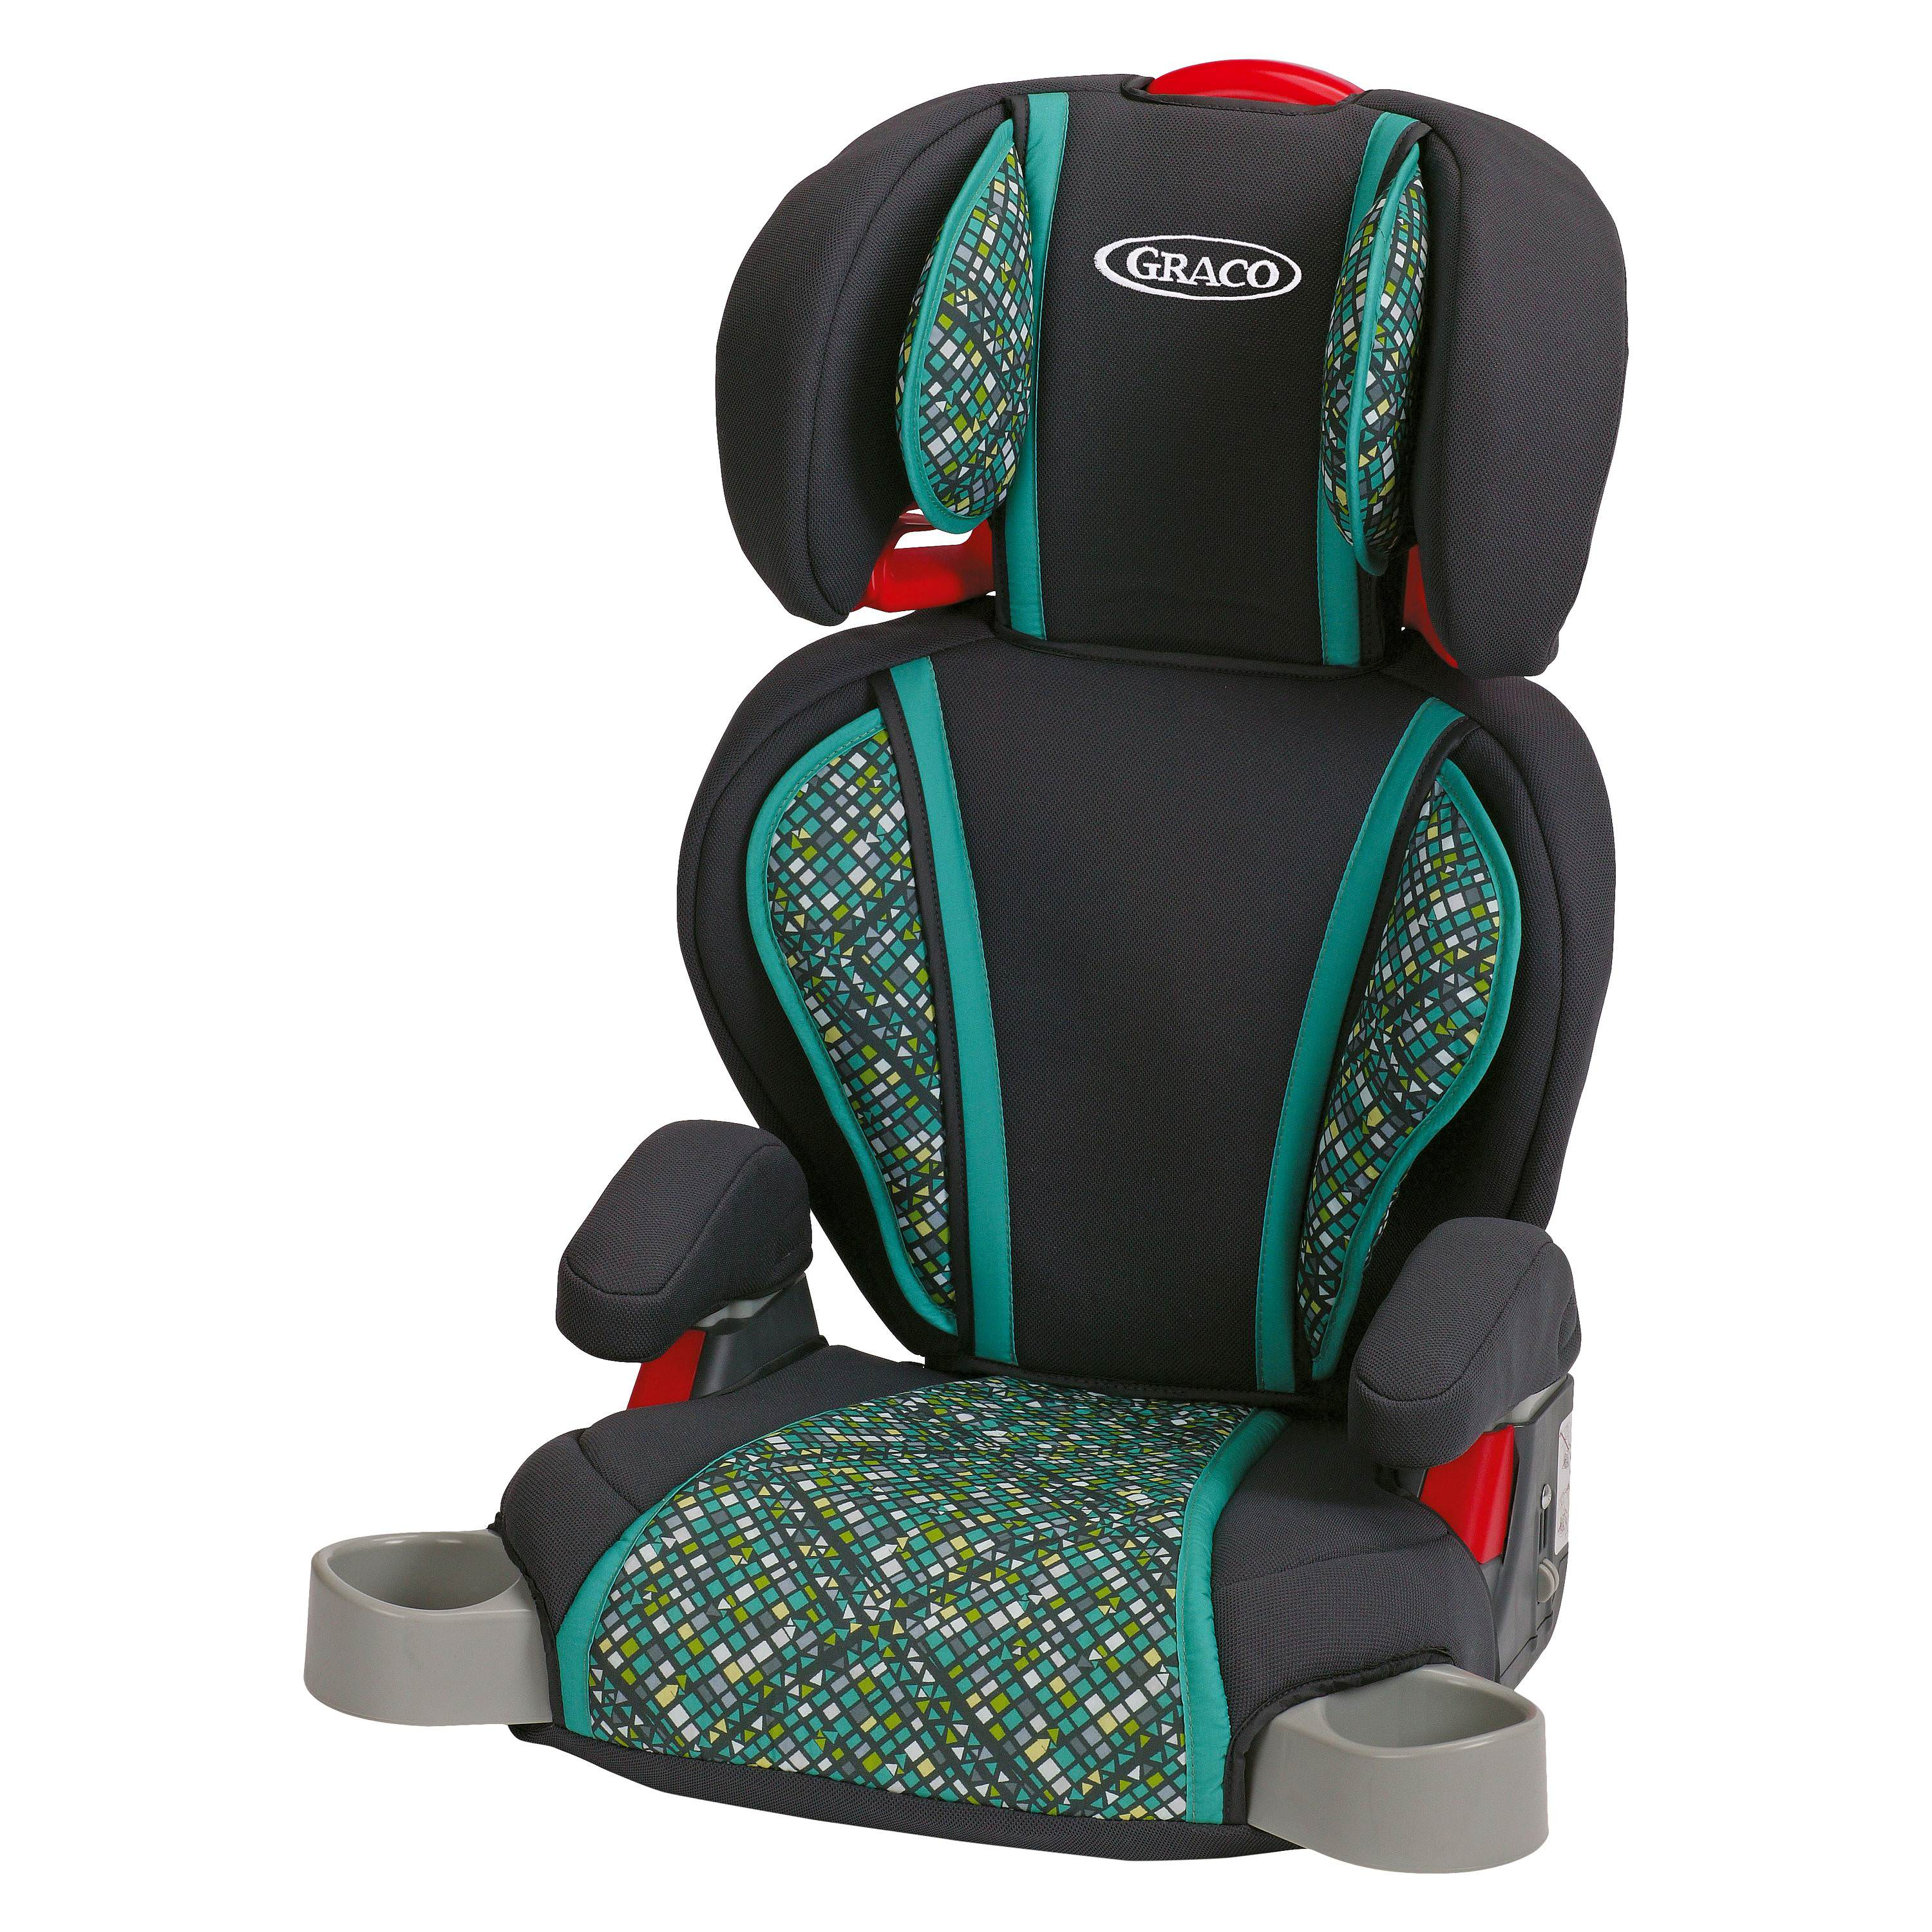 Target REDcard Deal: Graco Highback Turbo Booster Car Seat $28.49 + Free Shipping *Live Now*